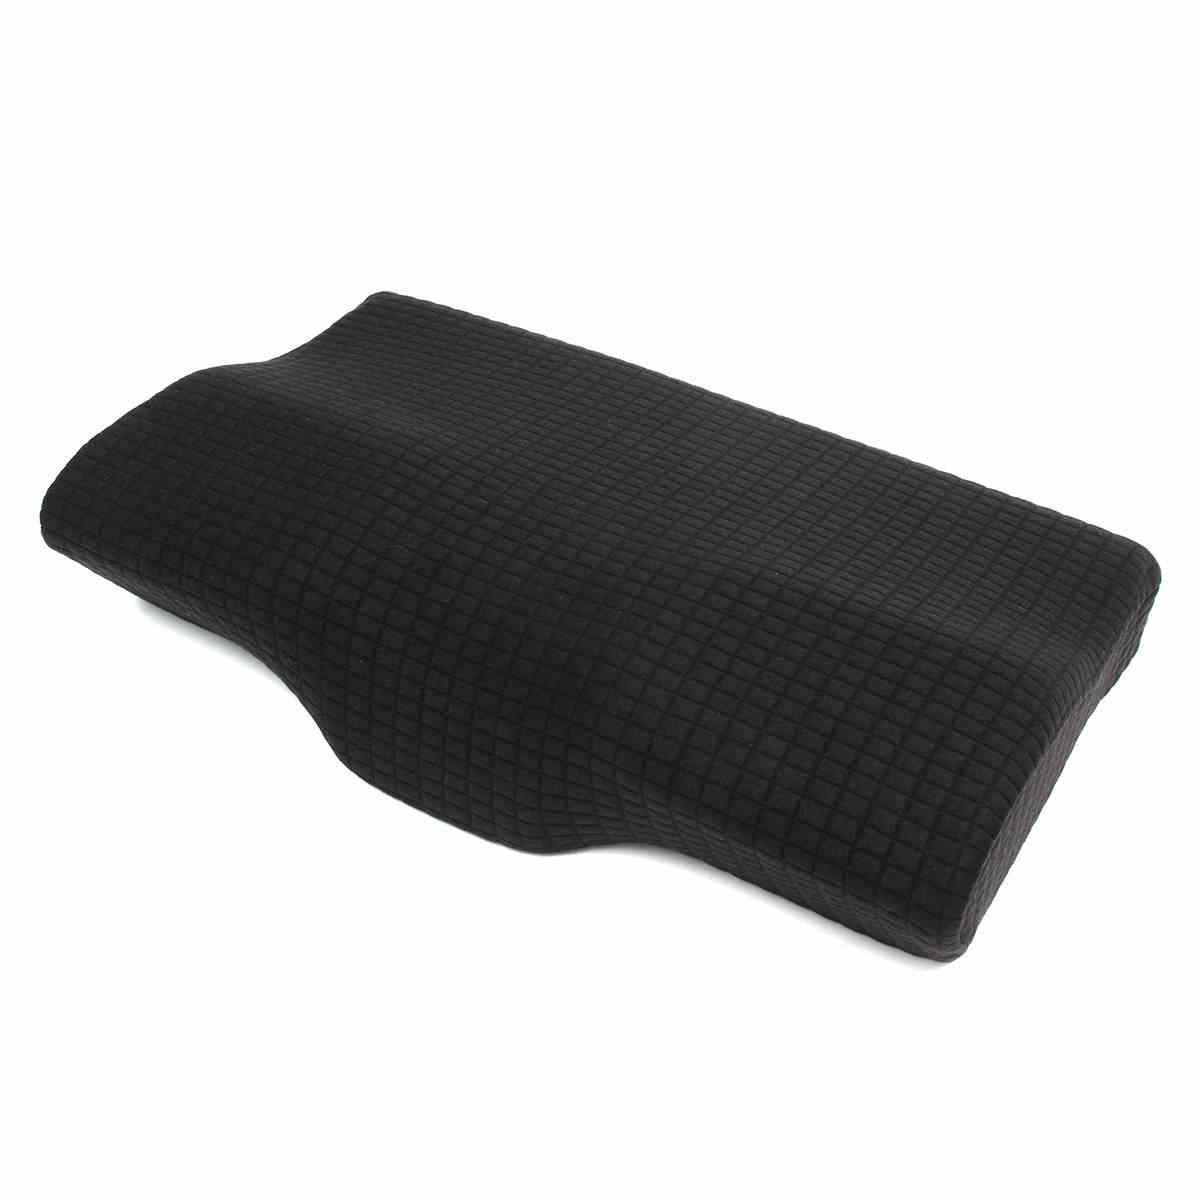 50X30X10cm Memory Foam Cervical Neck Pillow Spondylosis Neck Pain Relief Slow Rebound Pillow Massager Relaxation Home Textiles